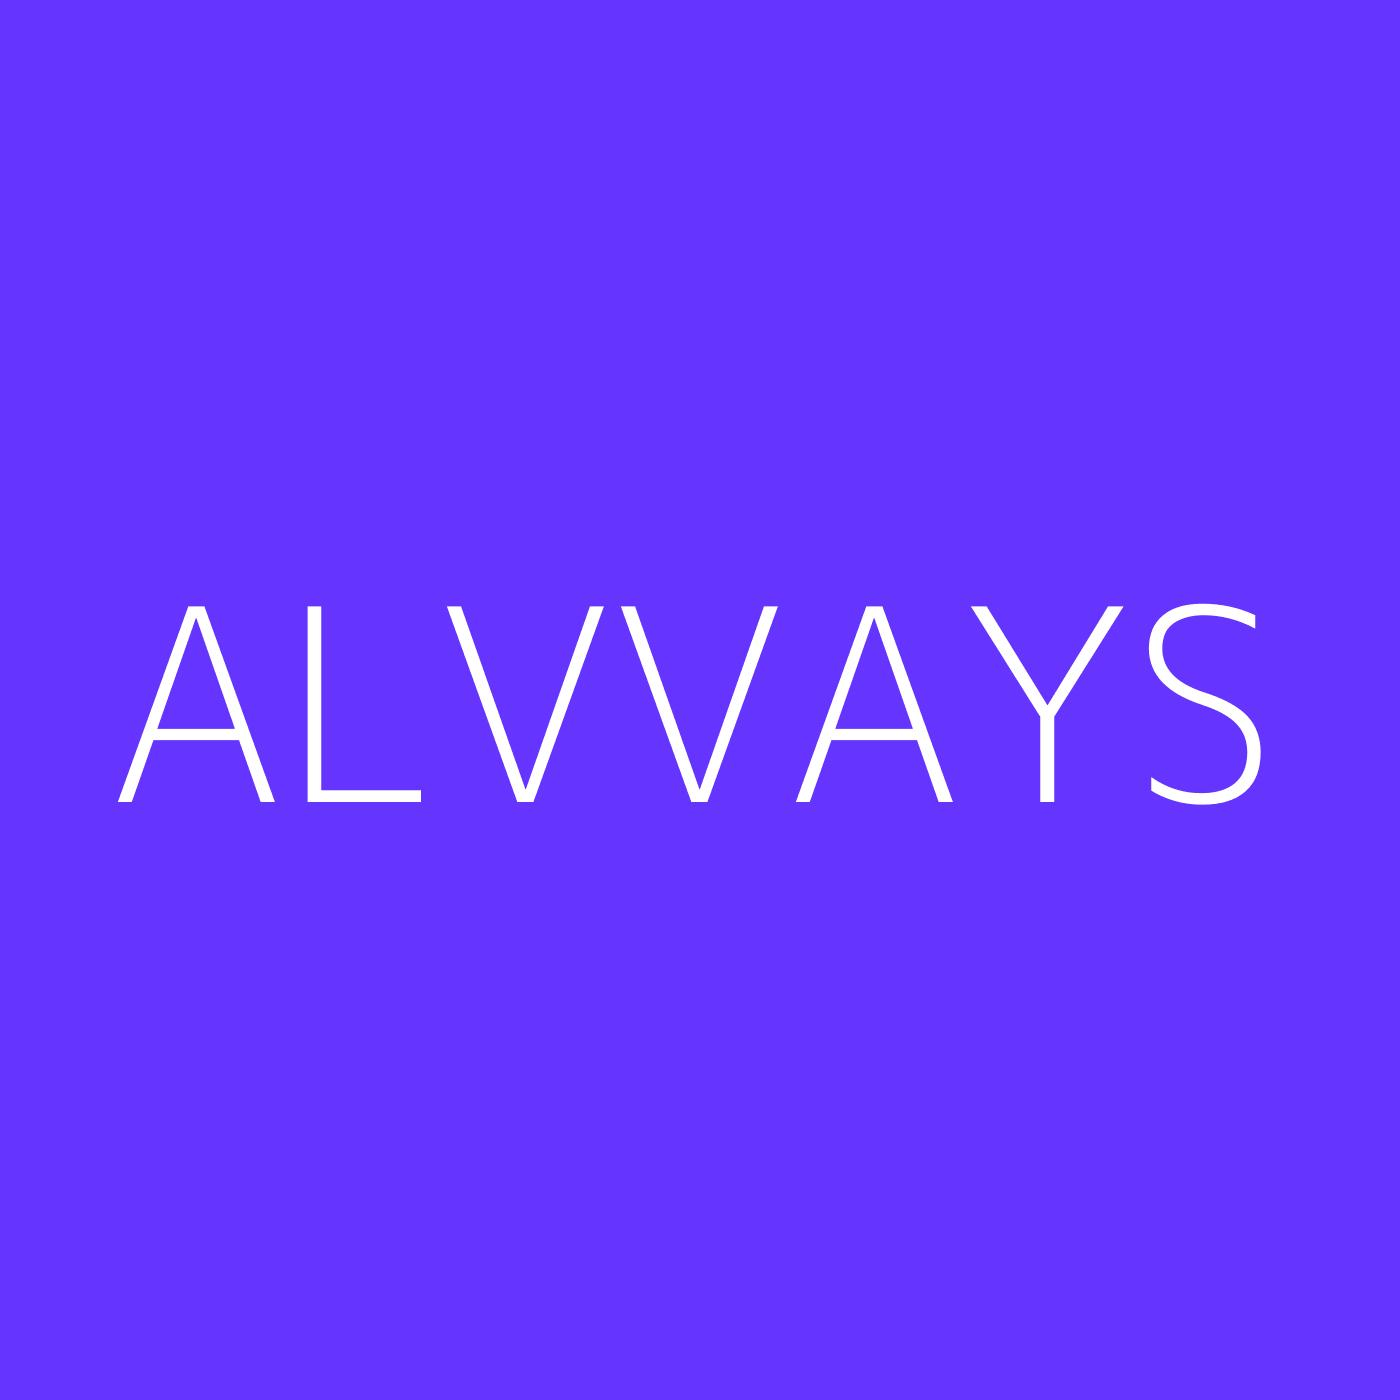 Alvvays Playlist Artwork